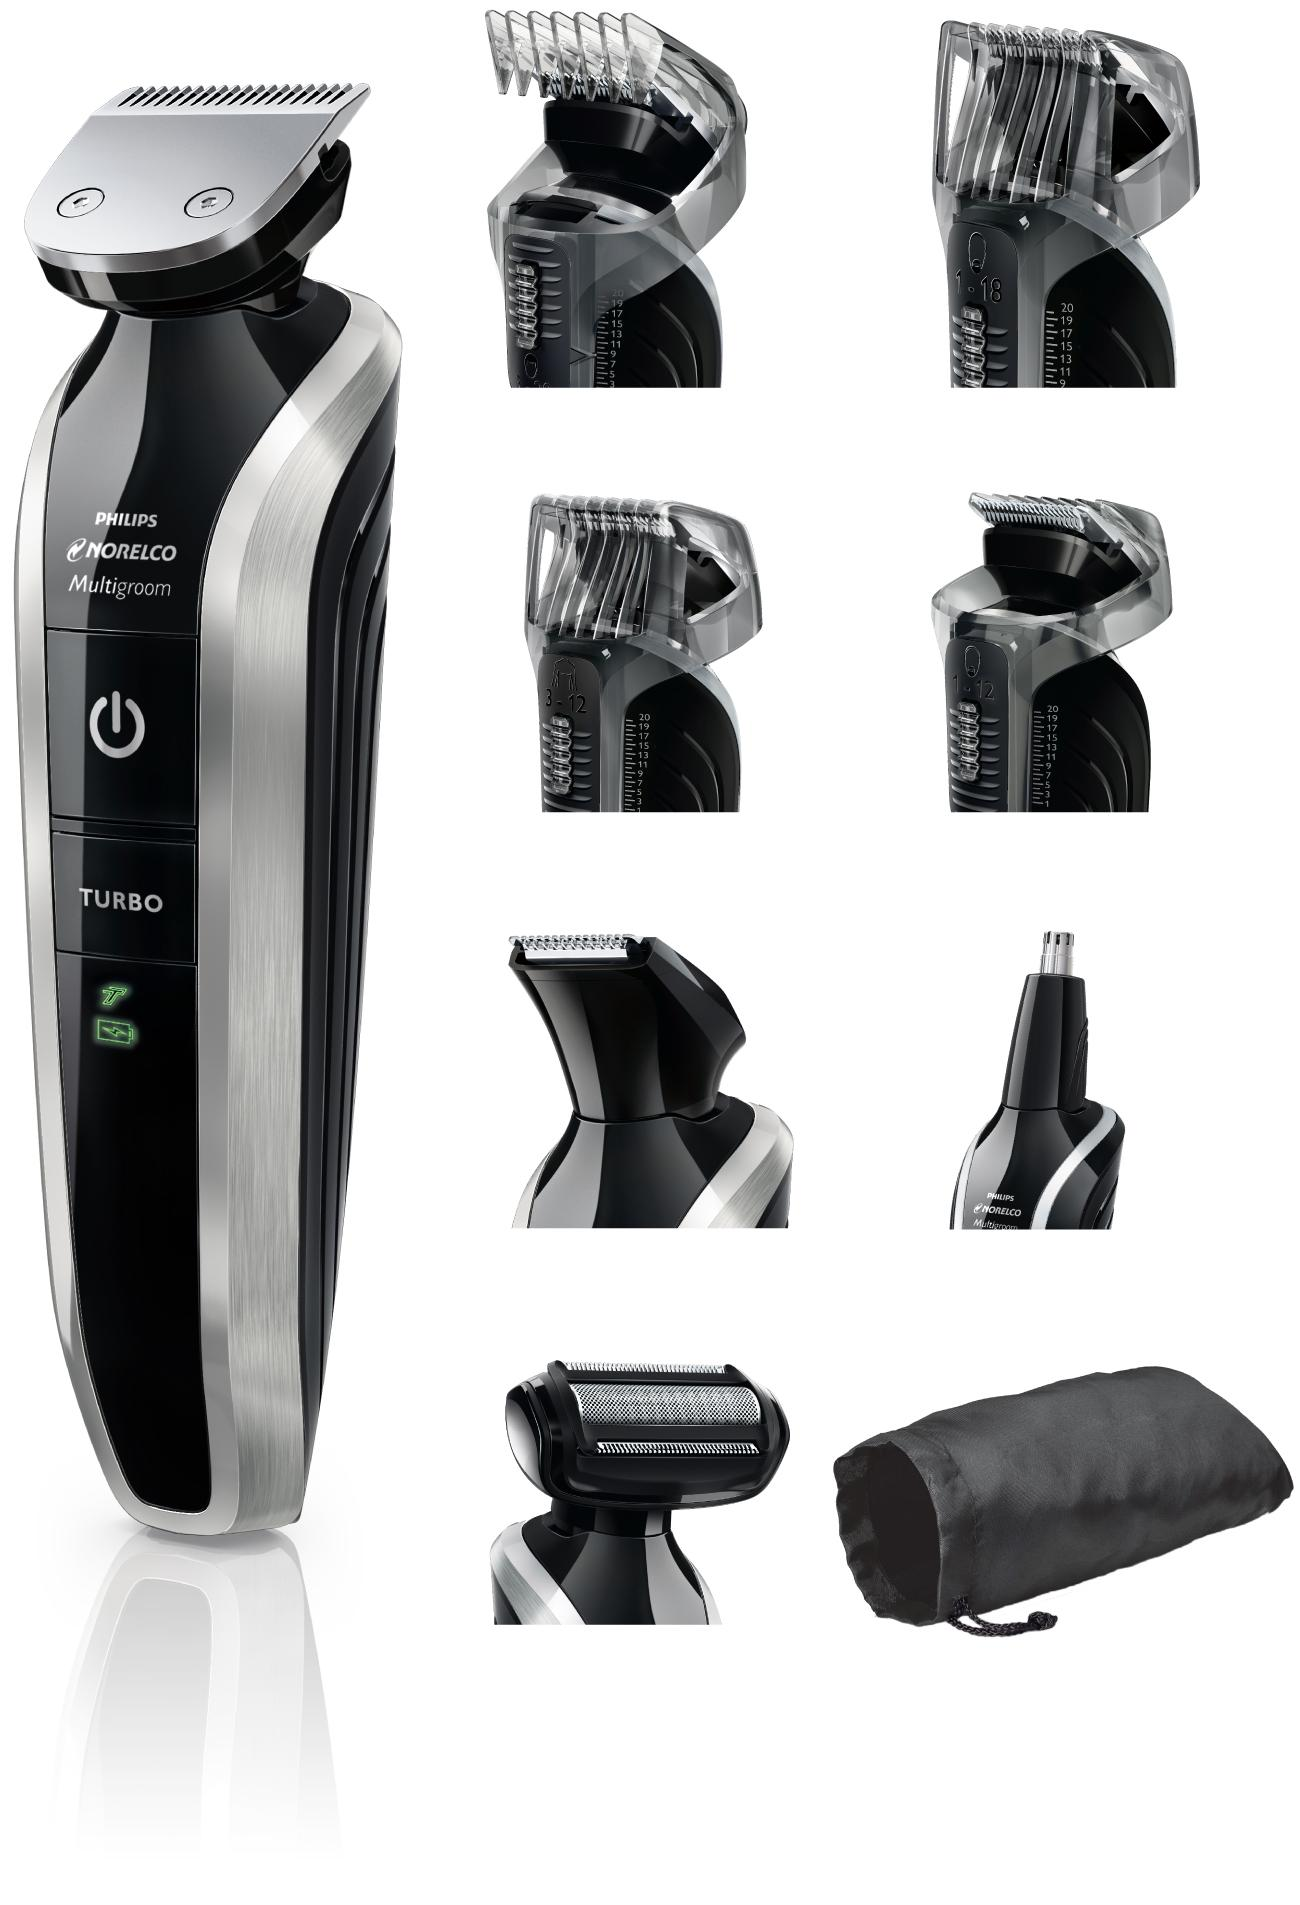 philips norelco multigroom series 7100 8 attachments qg3390 beauty. Black Bedroom Furniture Sets. Home Design Ideas